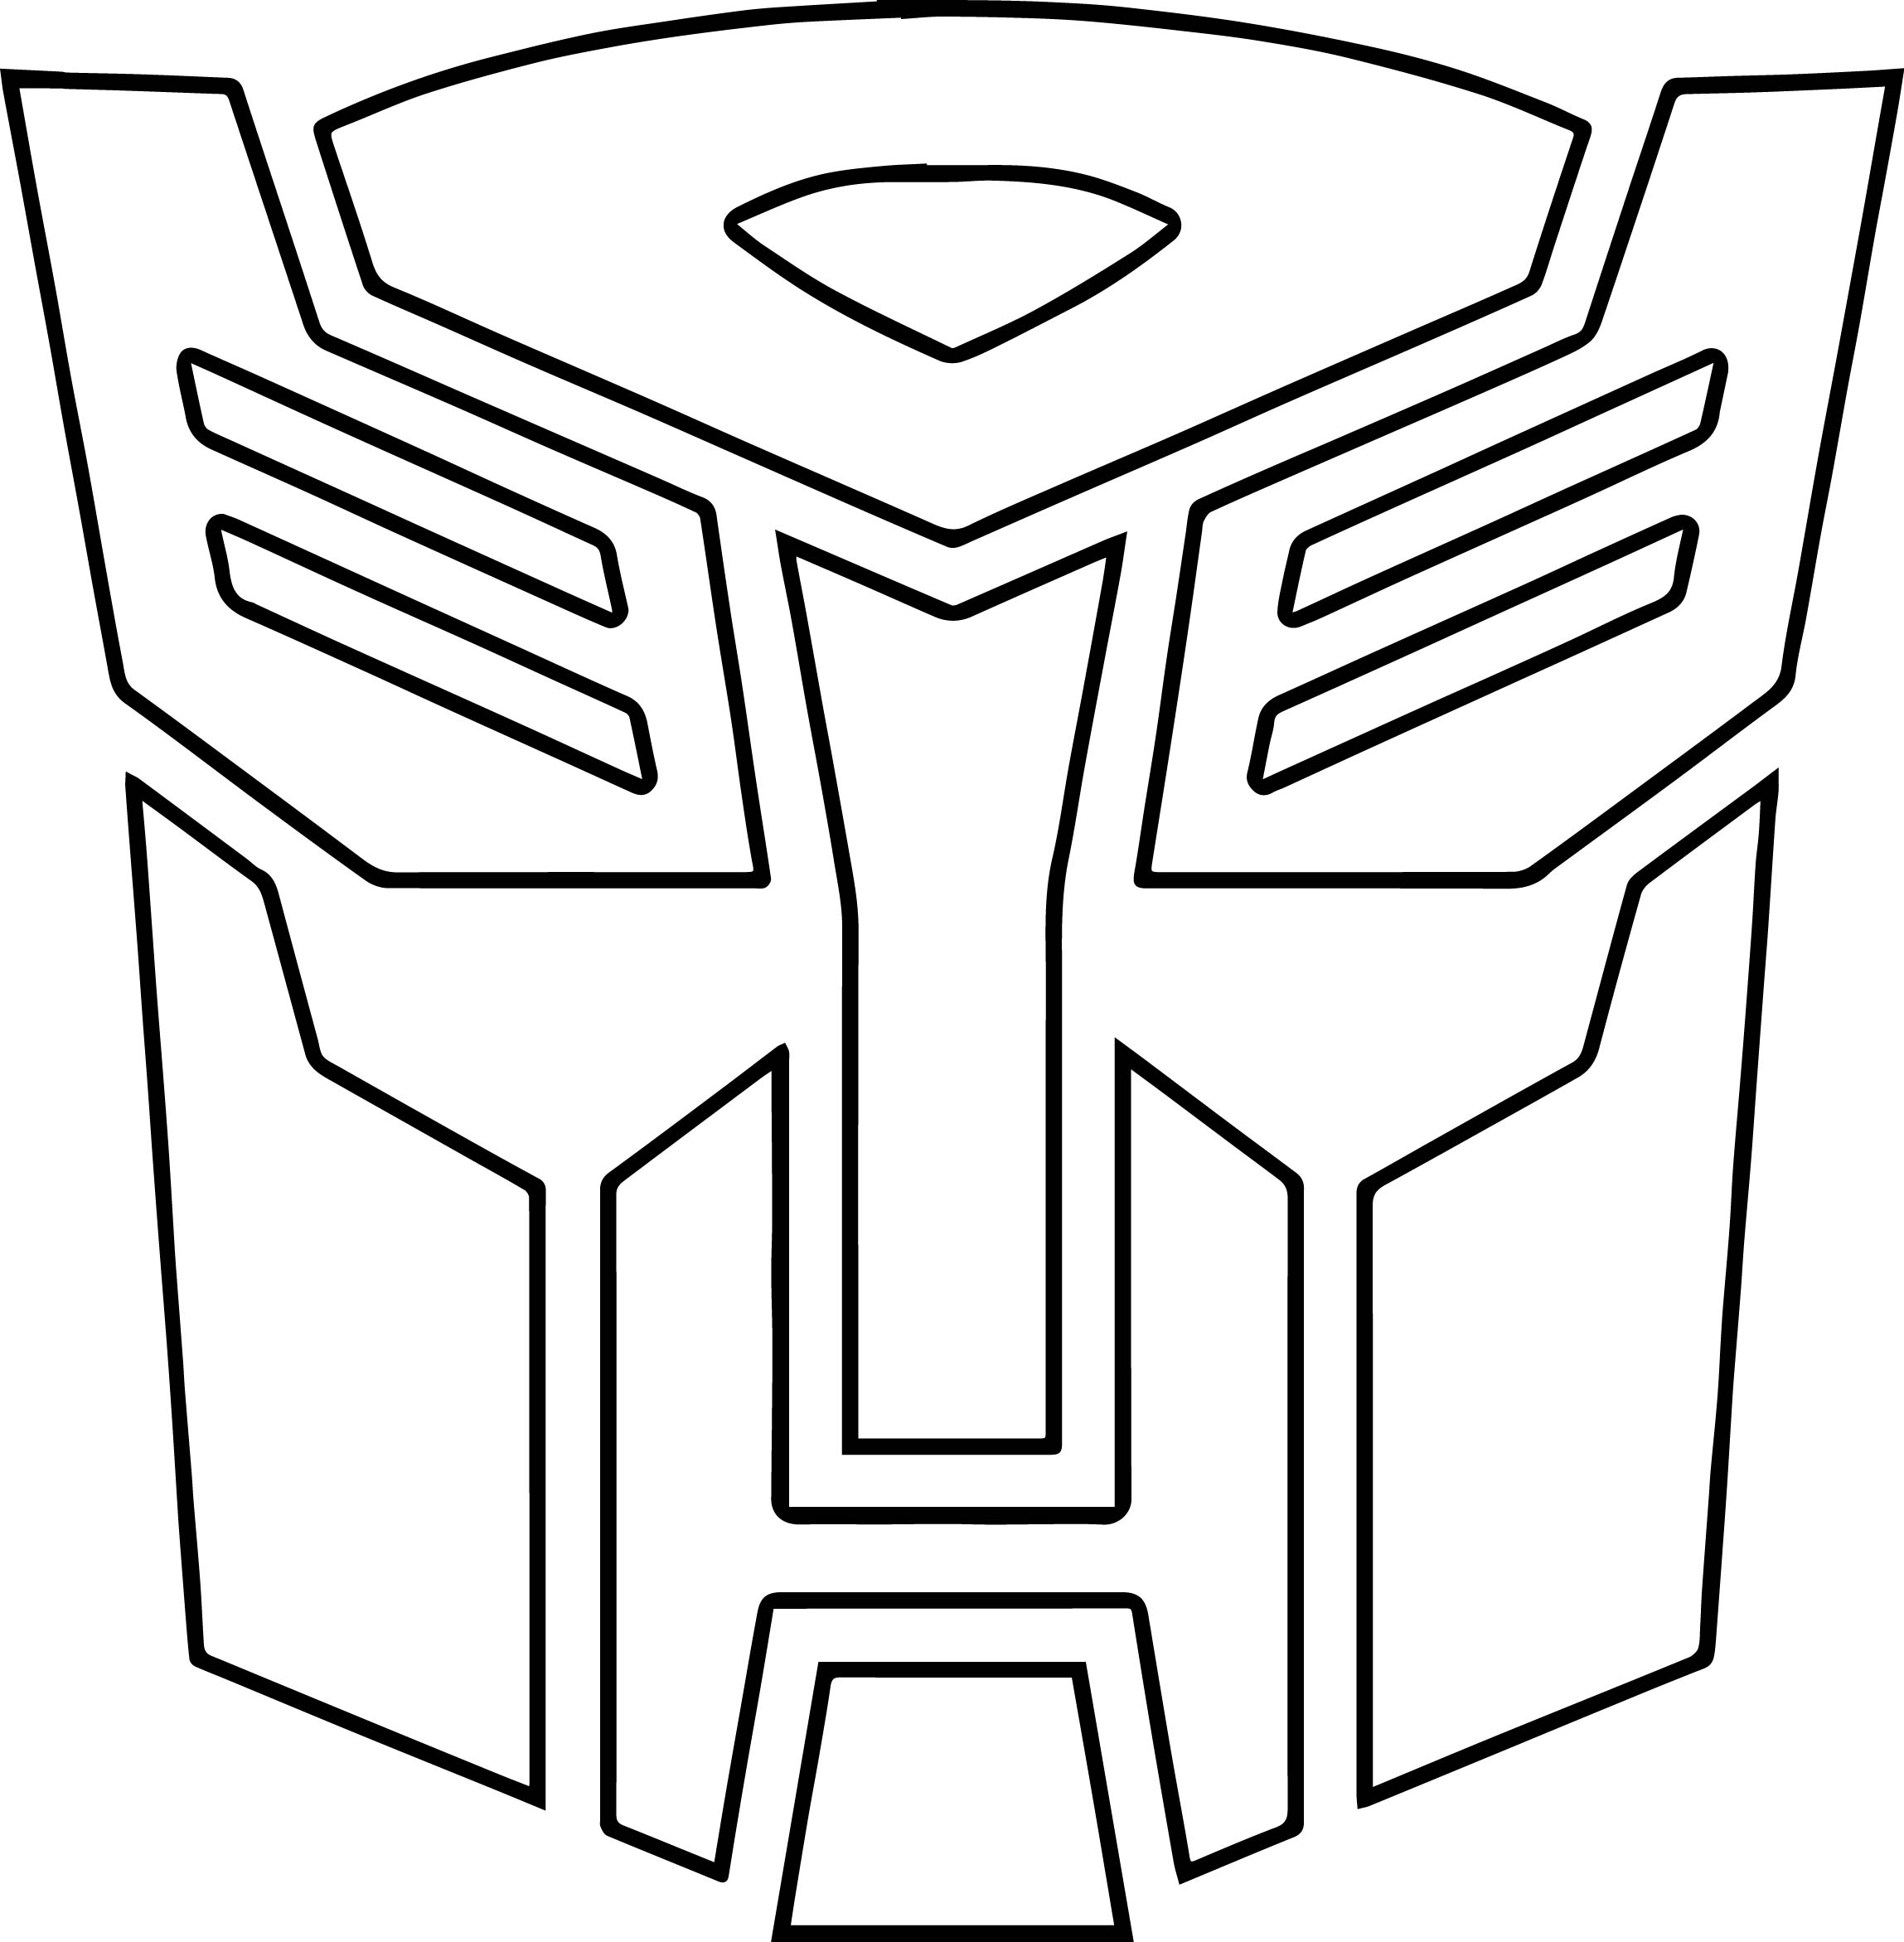 Transformers Autobot Logo Coloring Page on halloween clip art